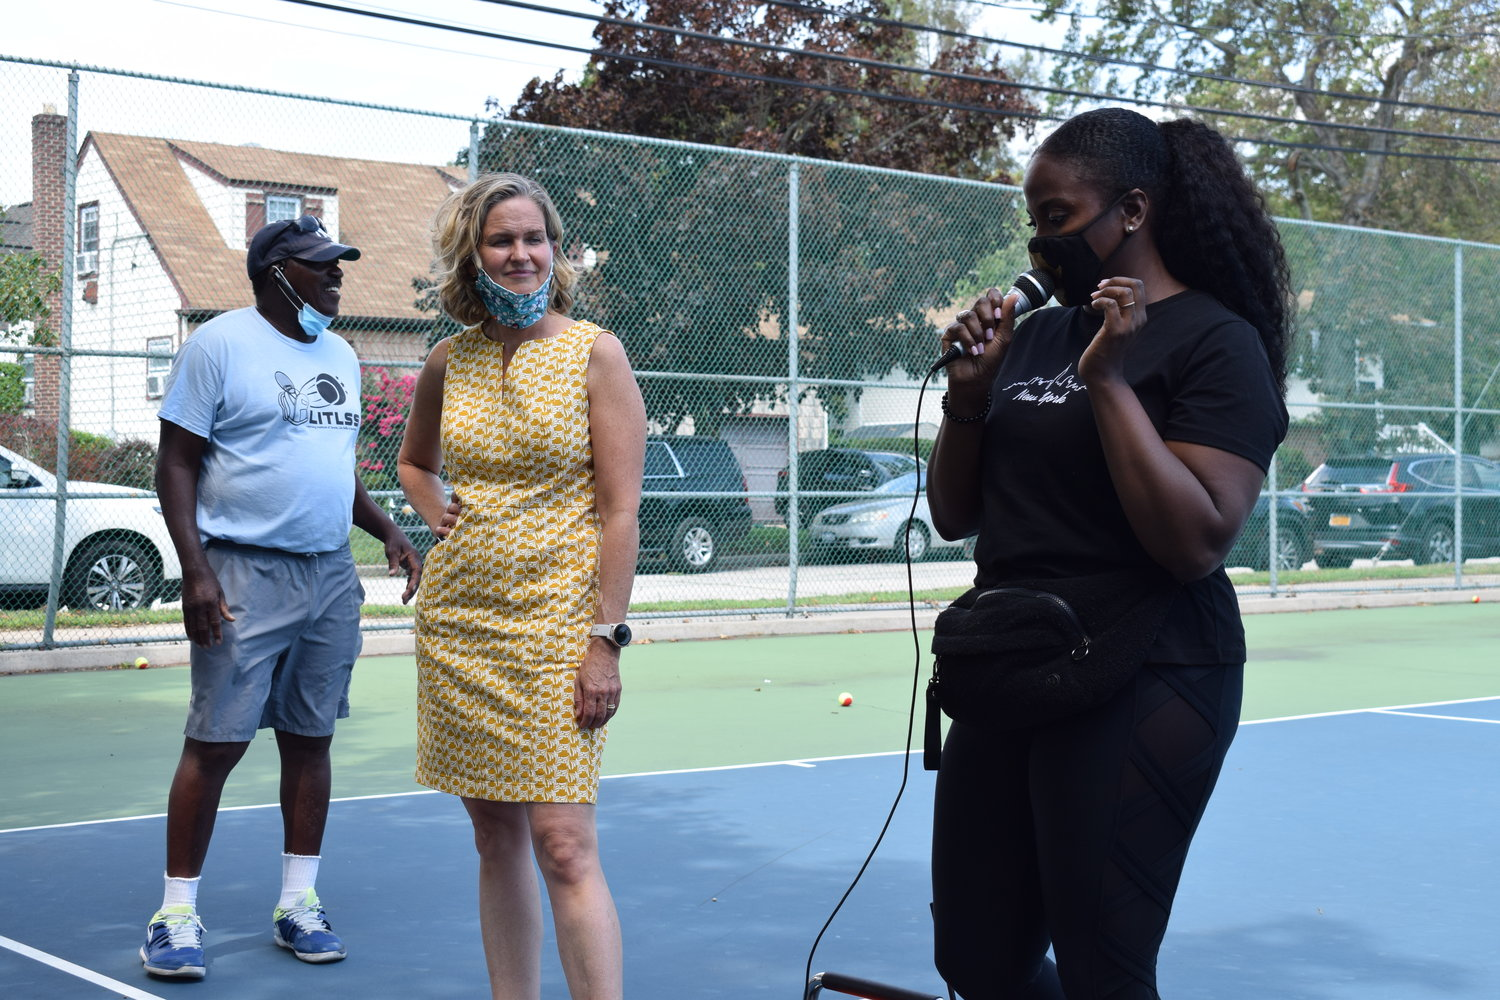 State Assemblywoman Taylor Darling, right, and Nassau County Executive Laura Curran shared their experiences learning tennis from Daniel Burgess.